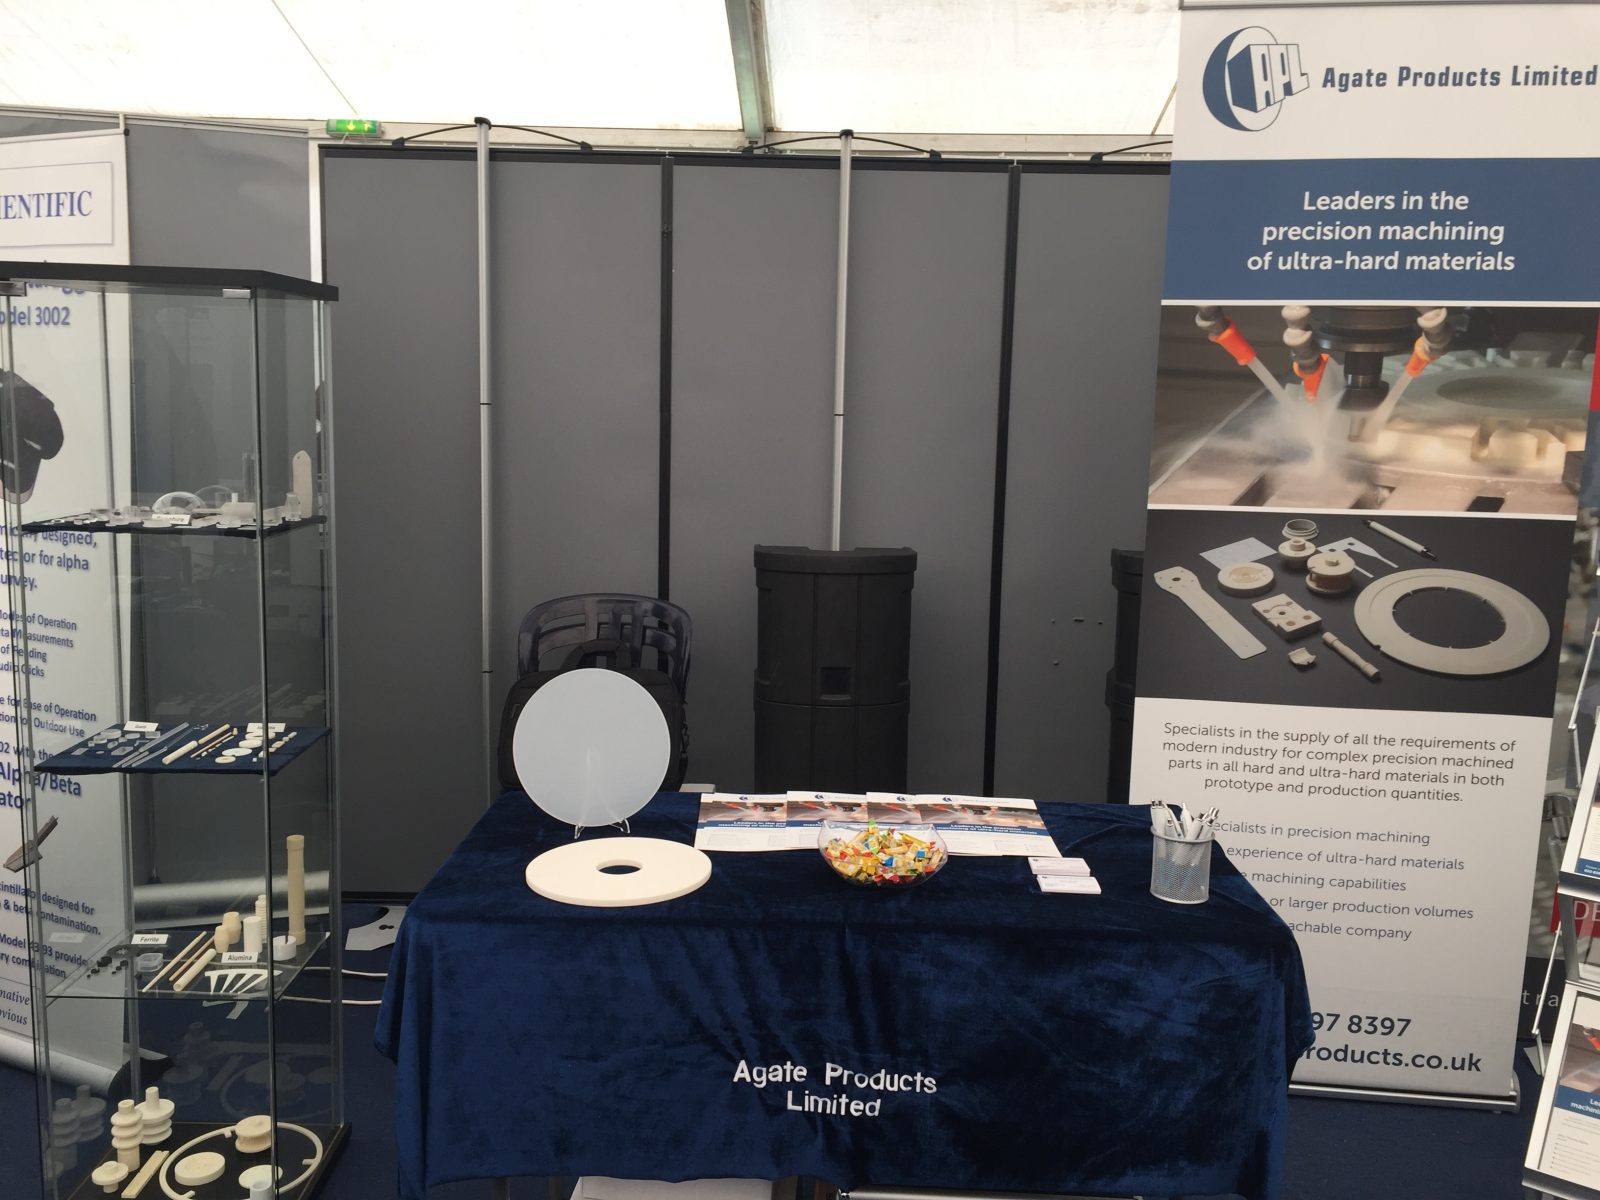 Agate Products Ltd exhibits at Rutherford Appleton Laboratory